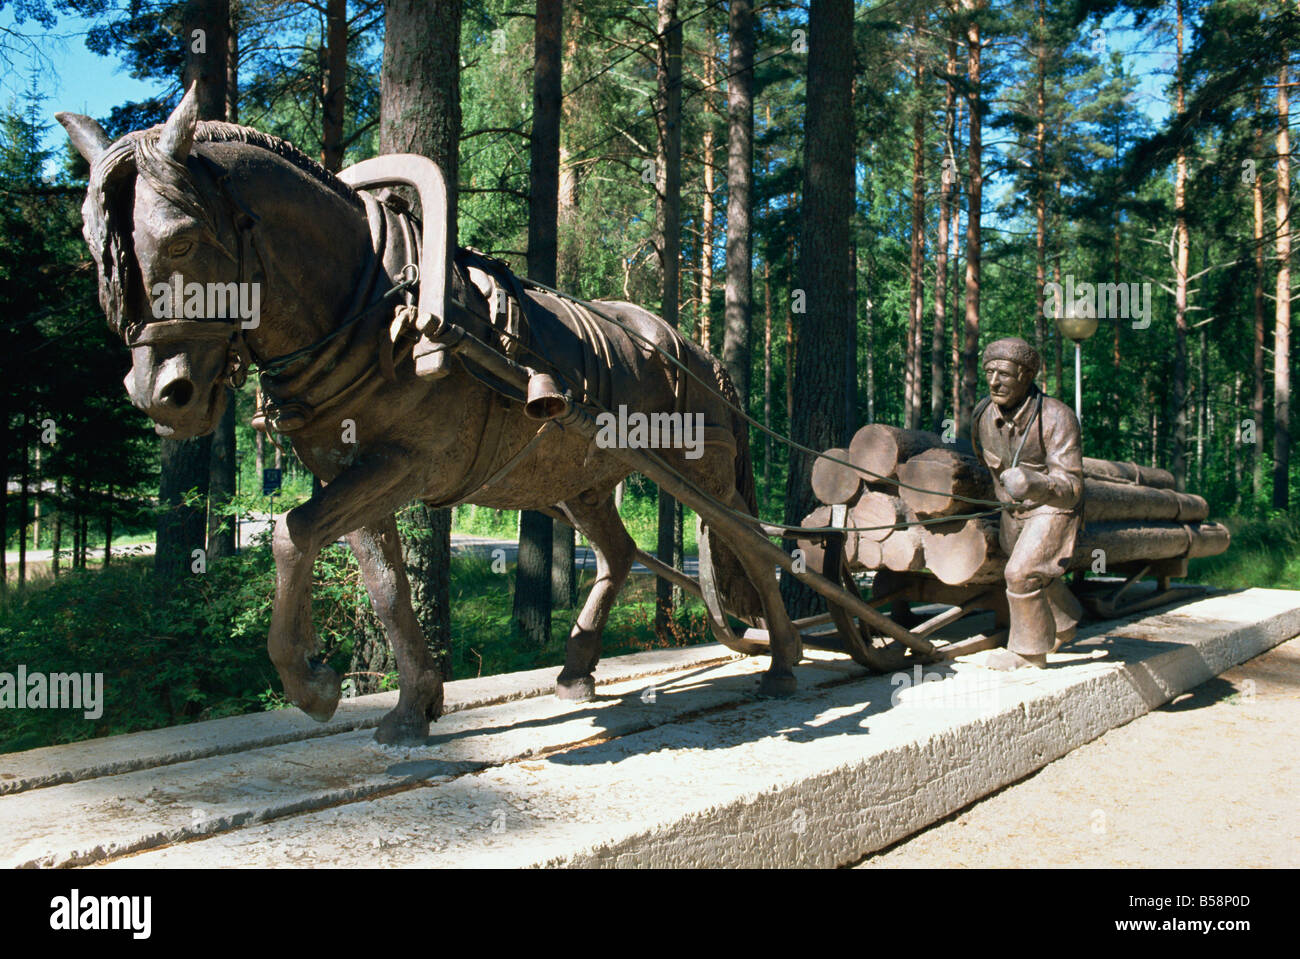 Logging as it used to be done with horses Finnish Forestry Museum Lusto Finland Scandinavia Europe - Stock Image